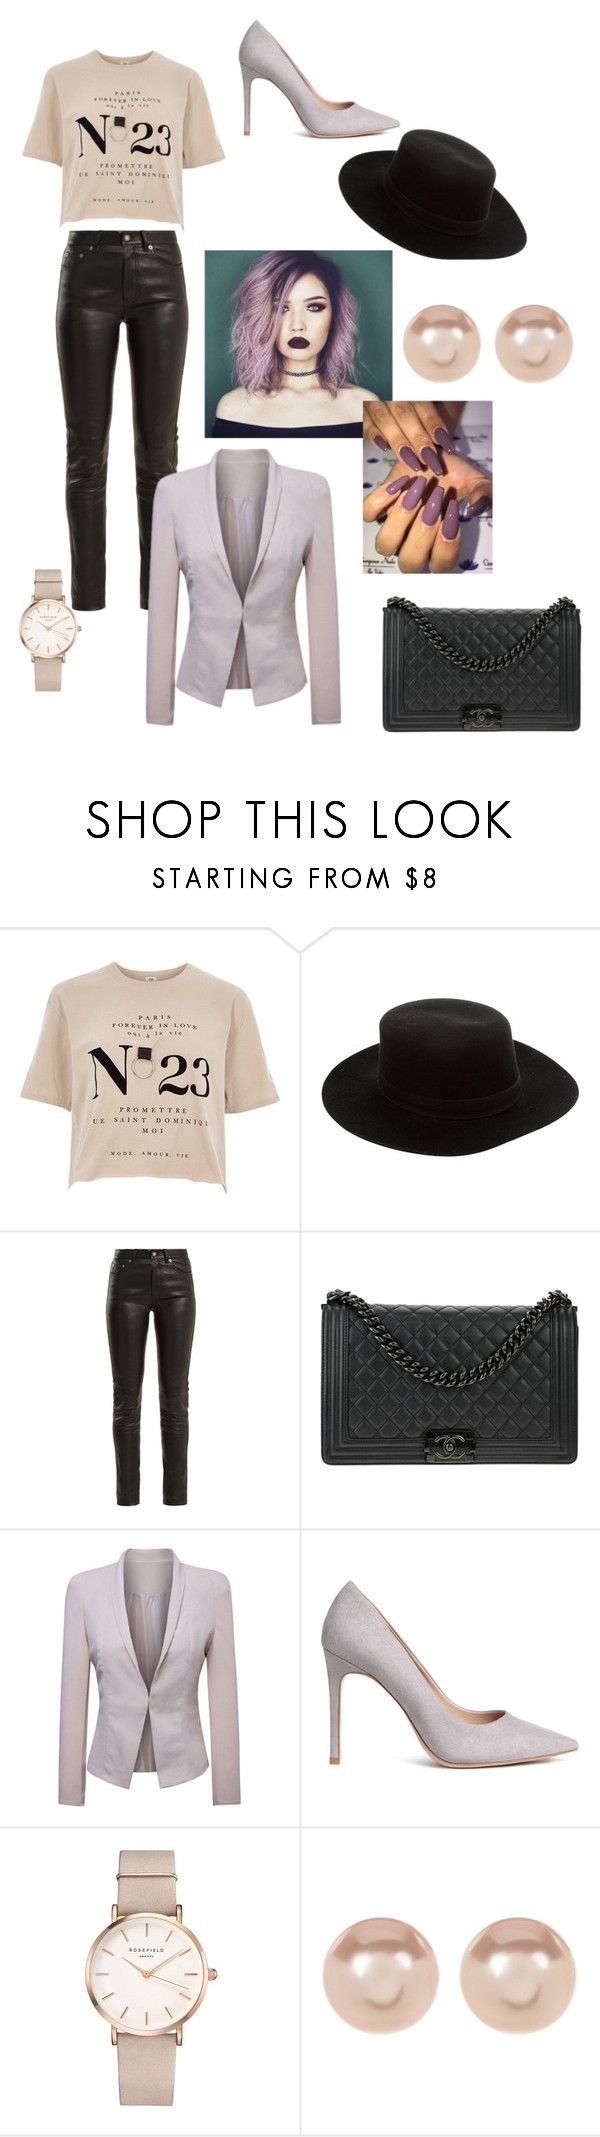 """""""Work Hard. Play Hard."""" by queen-elizac ❤ liked on Polyvore featuring River Island, Janessa Leone, Yves Saint Laurent, Chanel, WithChic, ROSEFIELD, Nordstrom Rack and MyFaveTshirt"""